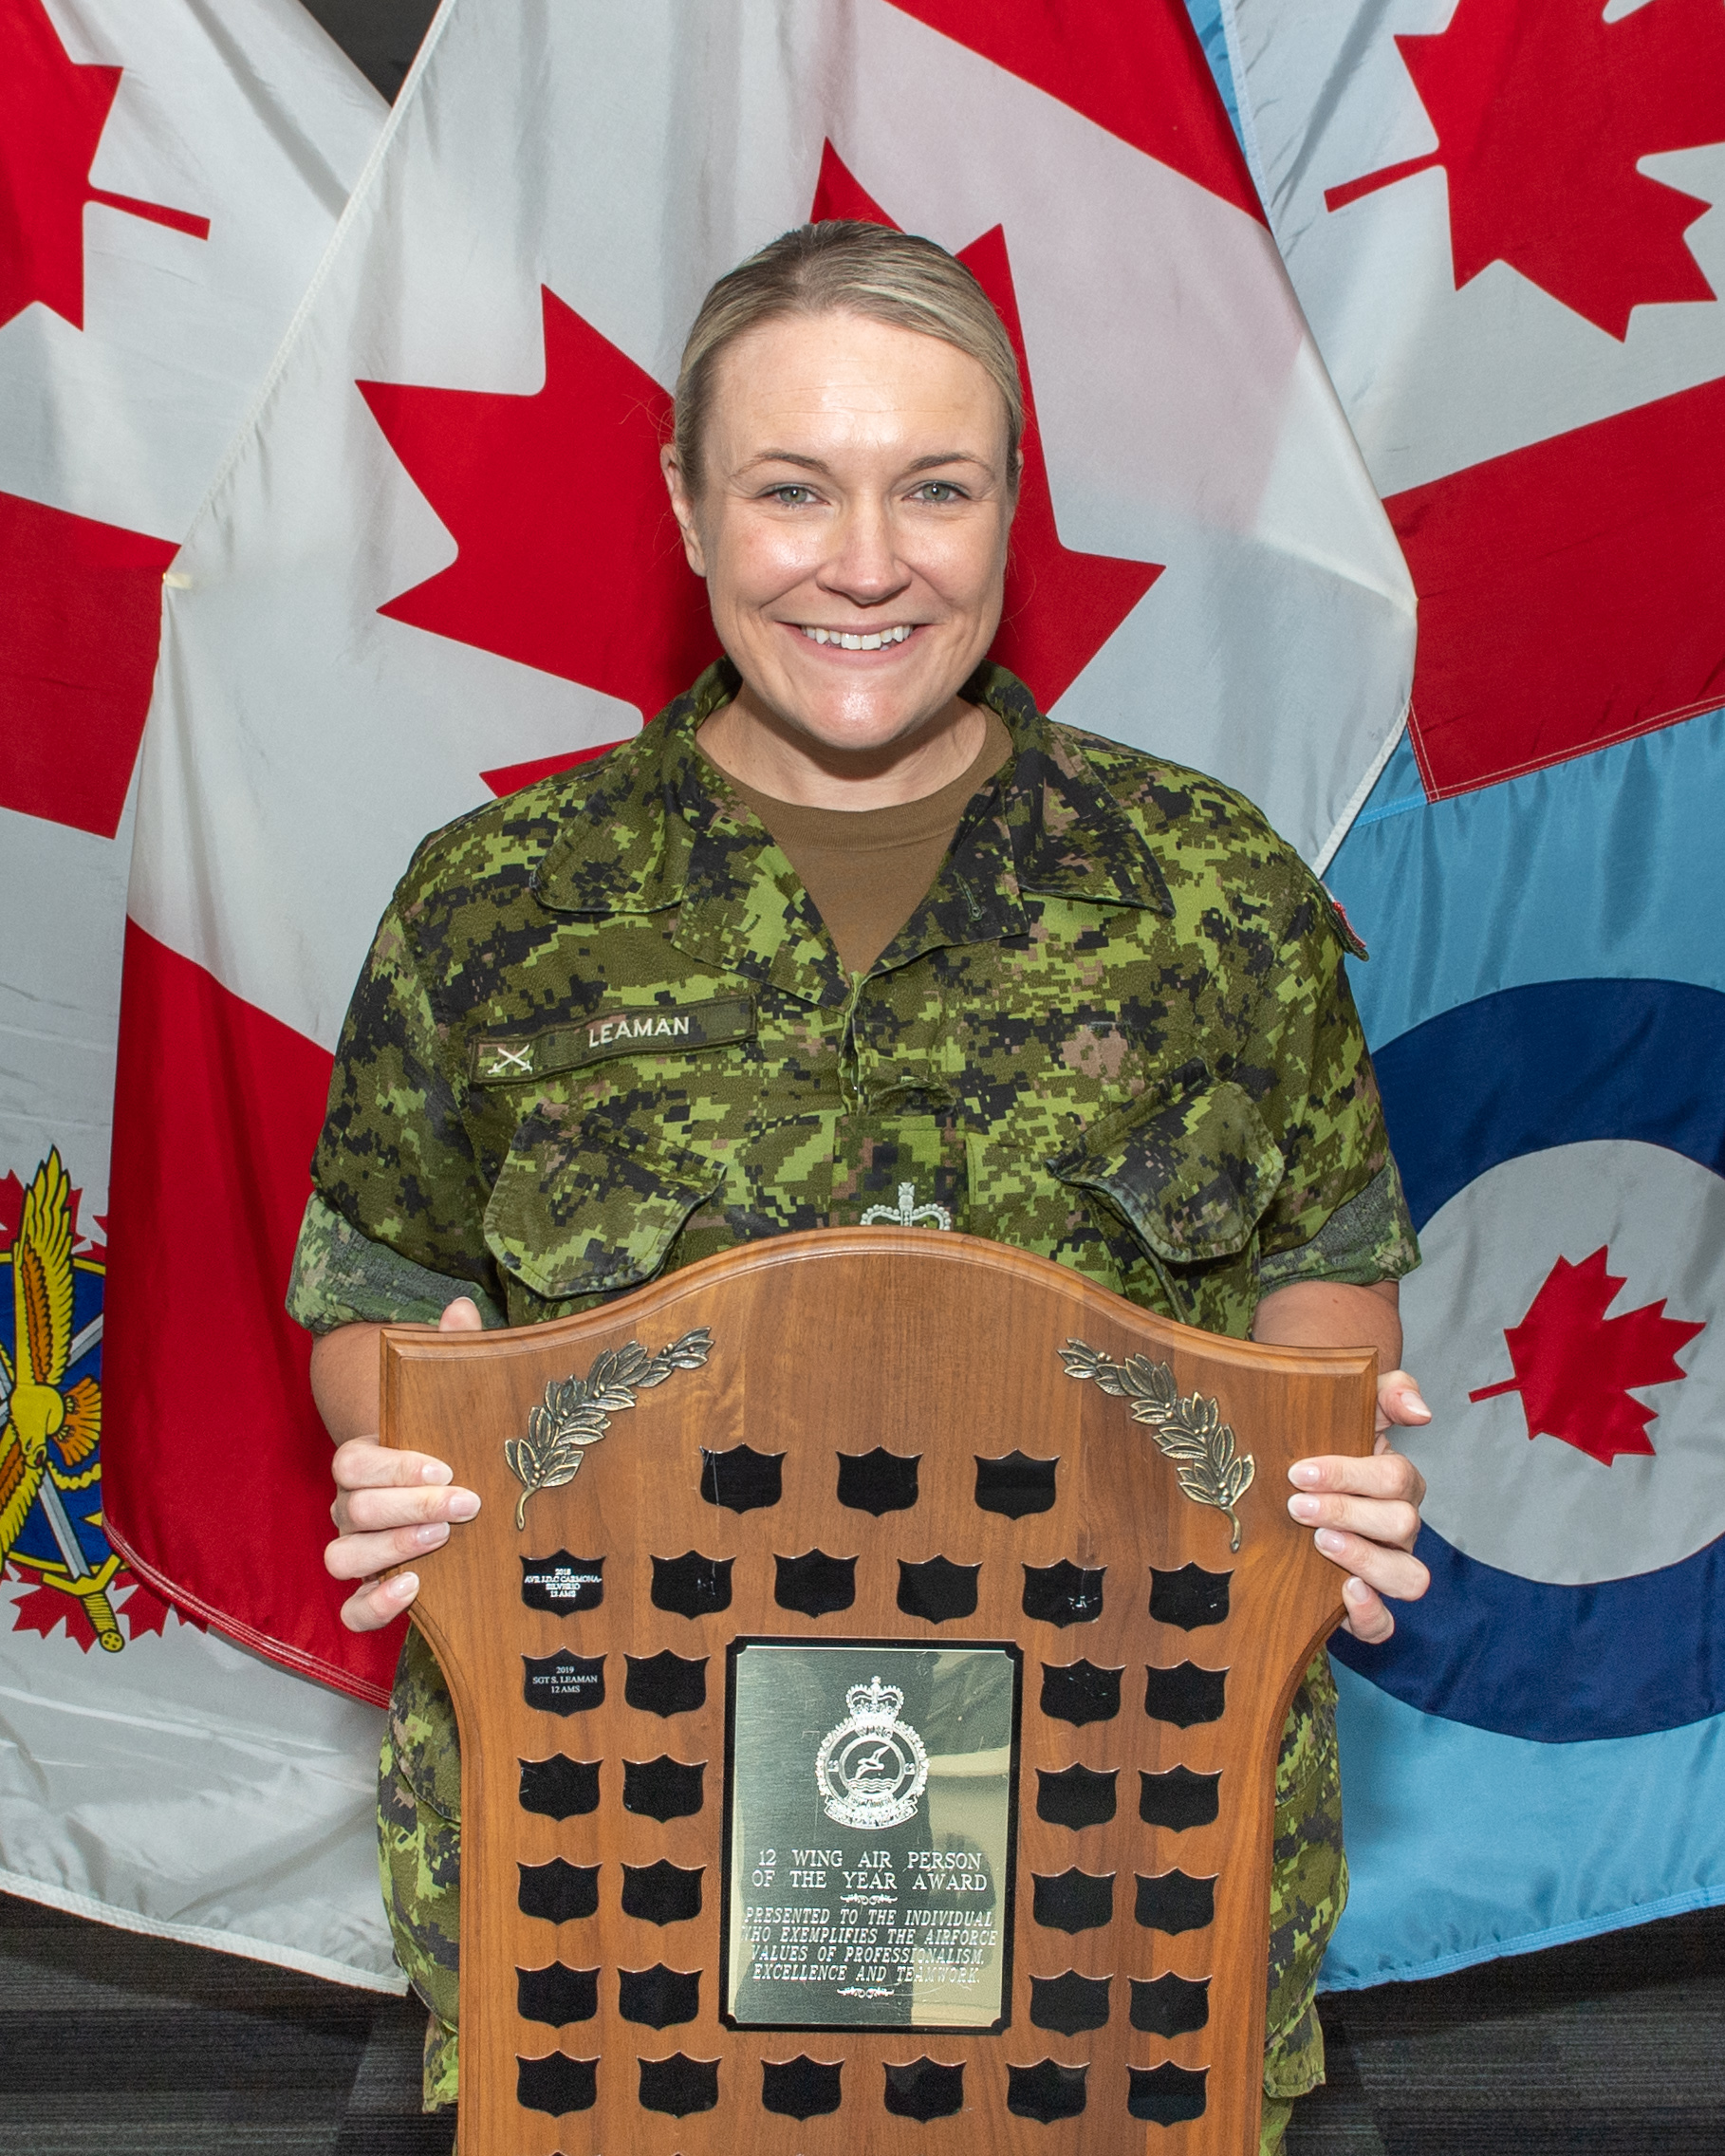 Warrant Officer Sandra Leaman, a supply technician with 12 Air Maintenance Squadron, at 12 Wing Shearwater, won the 12 Wing Shearwater Air Person of the Year Award on July 10, 2020. PHOTO: Sailor First Class Laurance Clarke